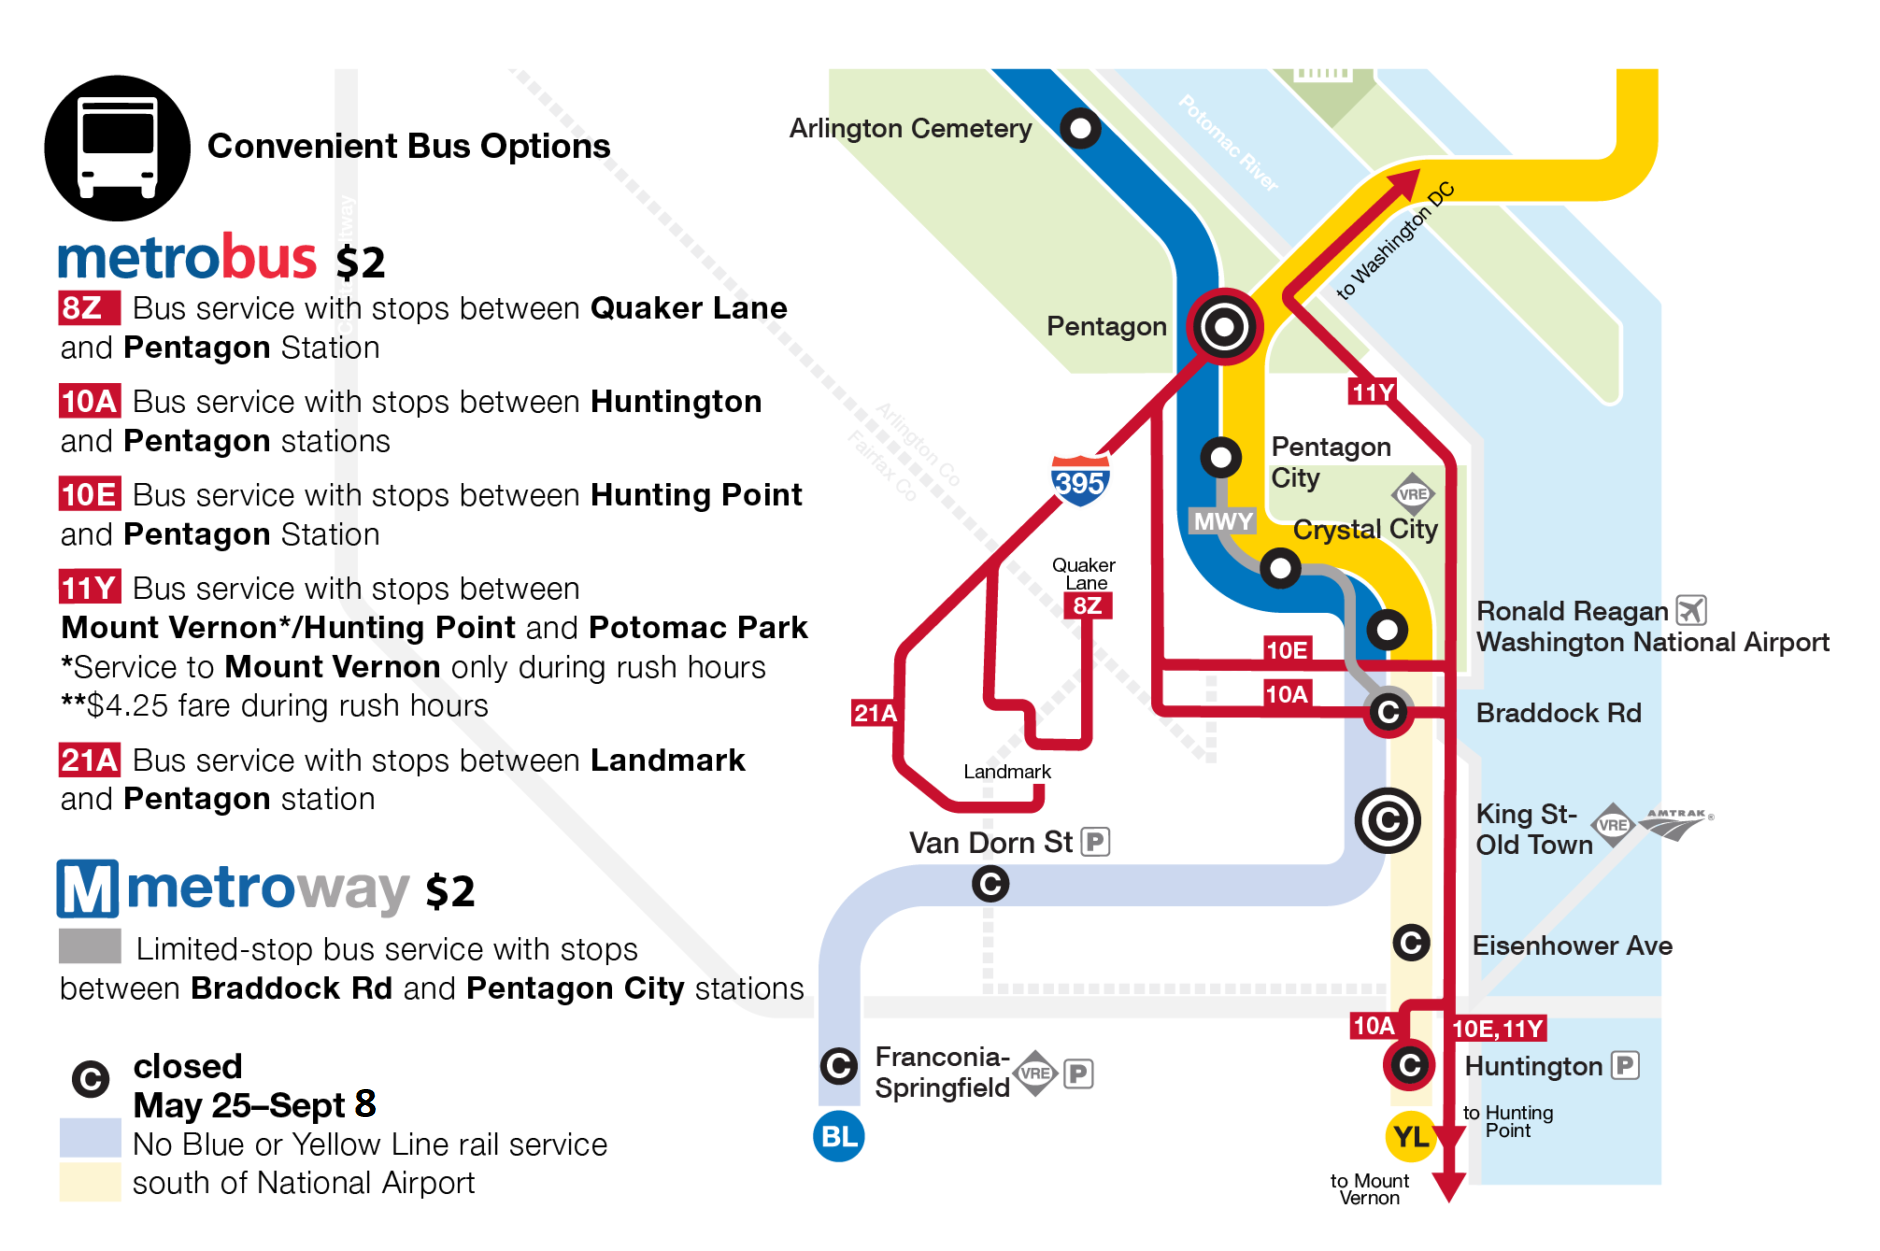 Map of bus and shuttle options